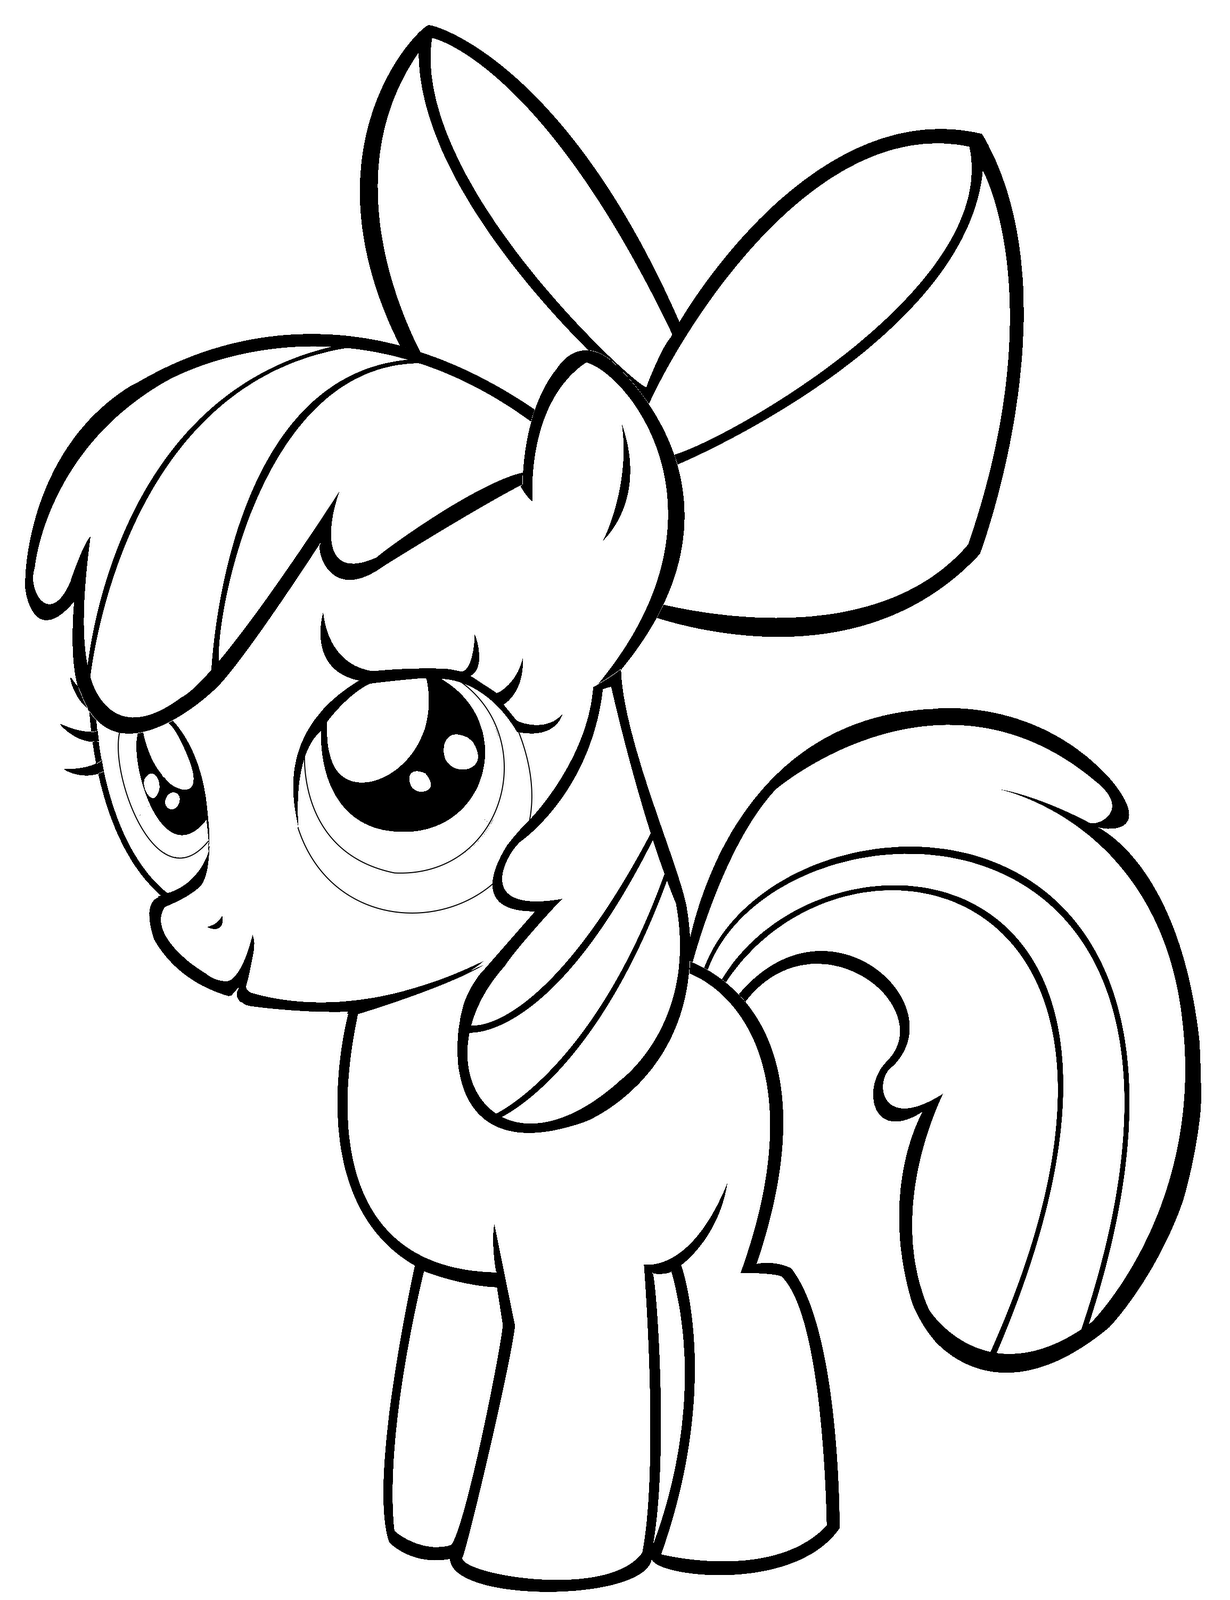 scootaloo coloring page scootaloo by kas92 on deviantart scootaloo page coloring